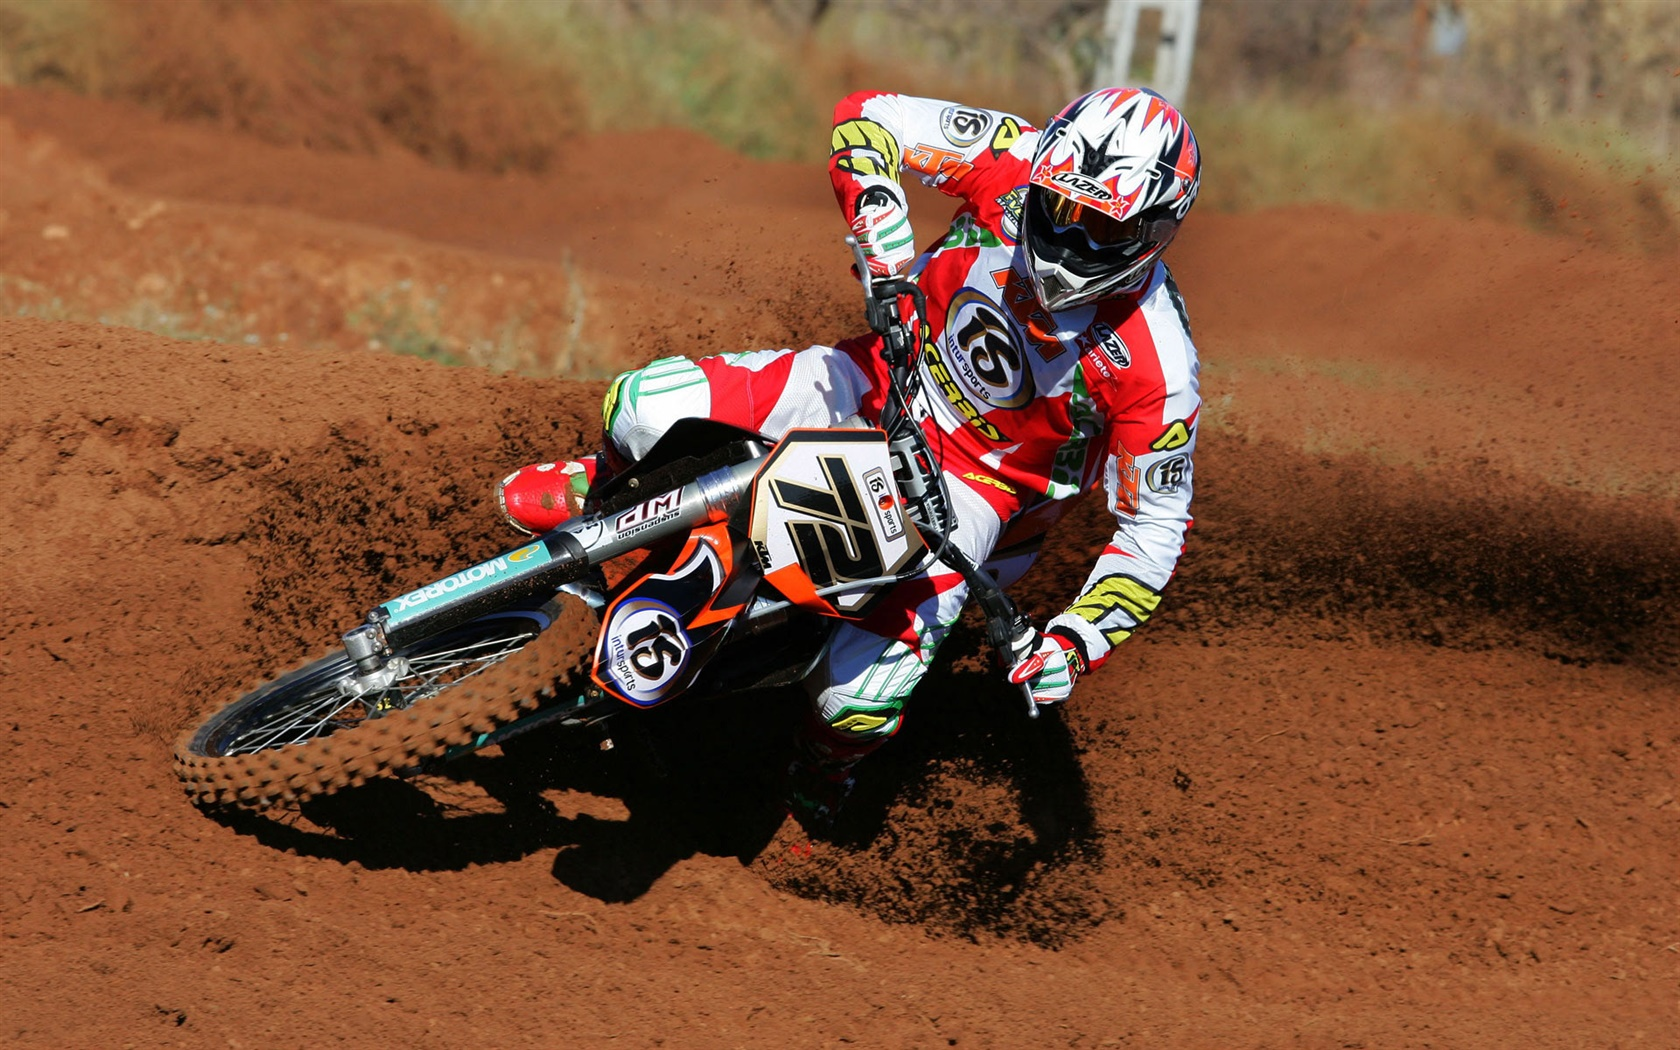 KTM Motorcycle race, drift 1680x1050 wallpaper